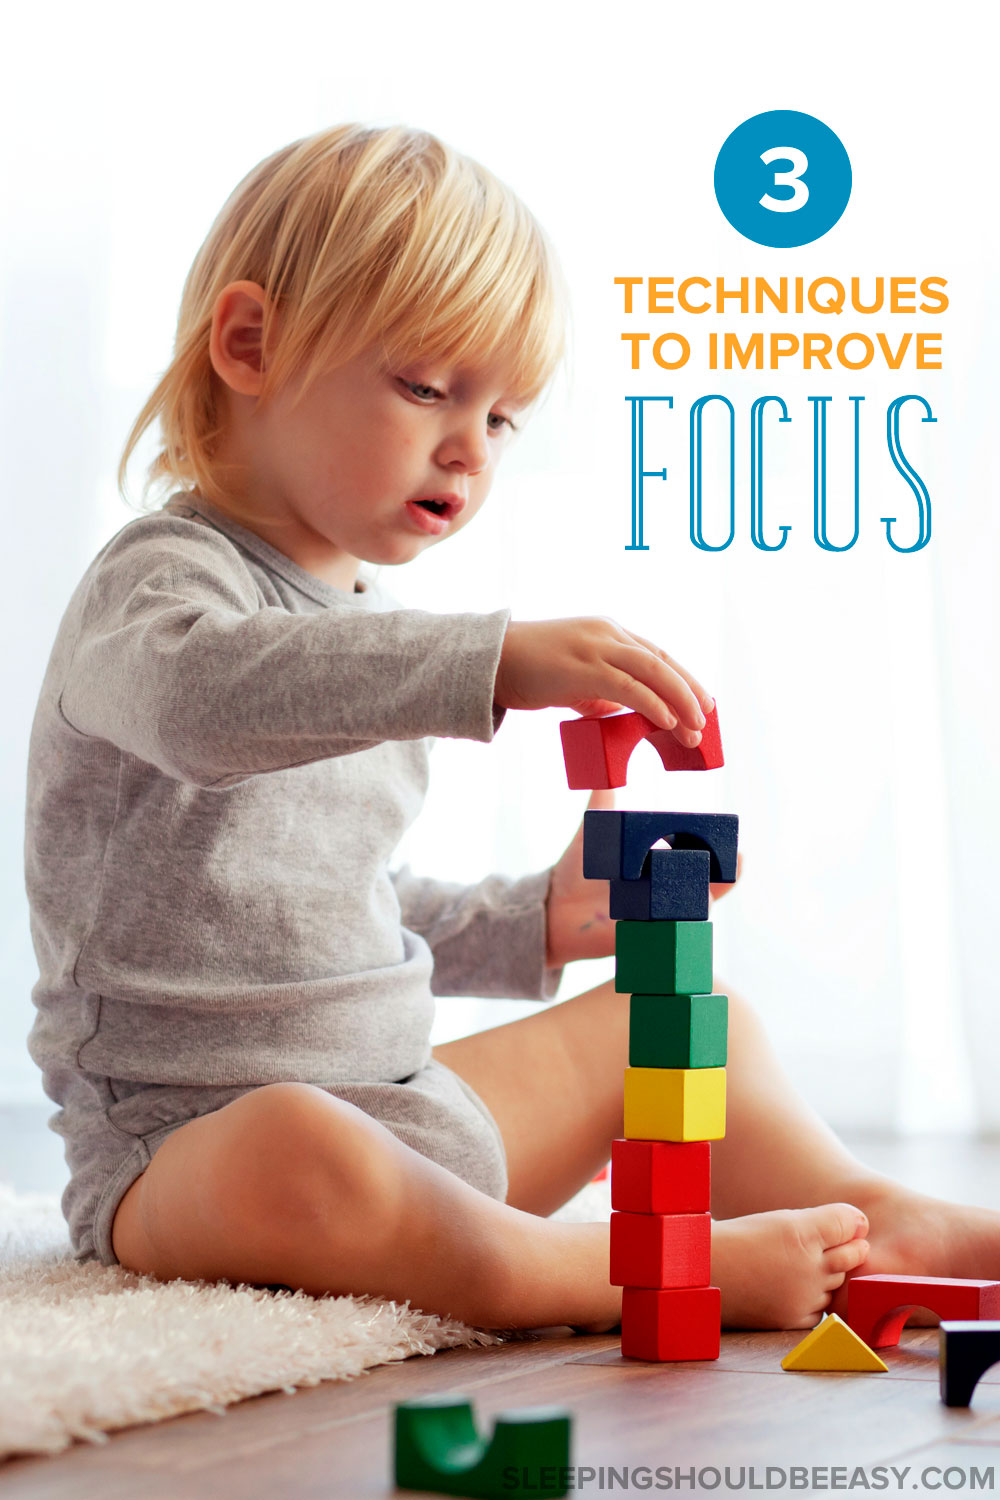 3 techniques to improve focus with kids. Perfect for the child who can't pay attention for a long time. Focus is an important skill—improve focus in children with these 3 tips.